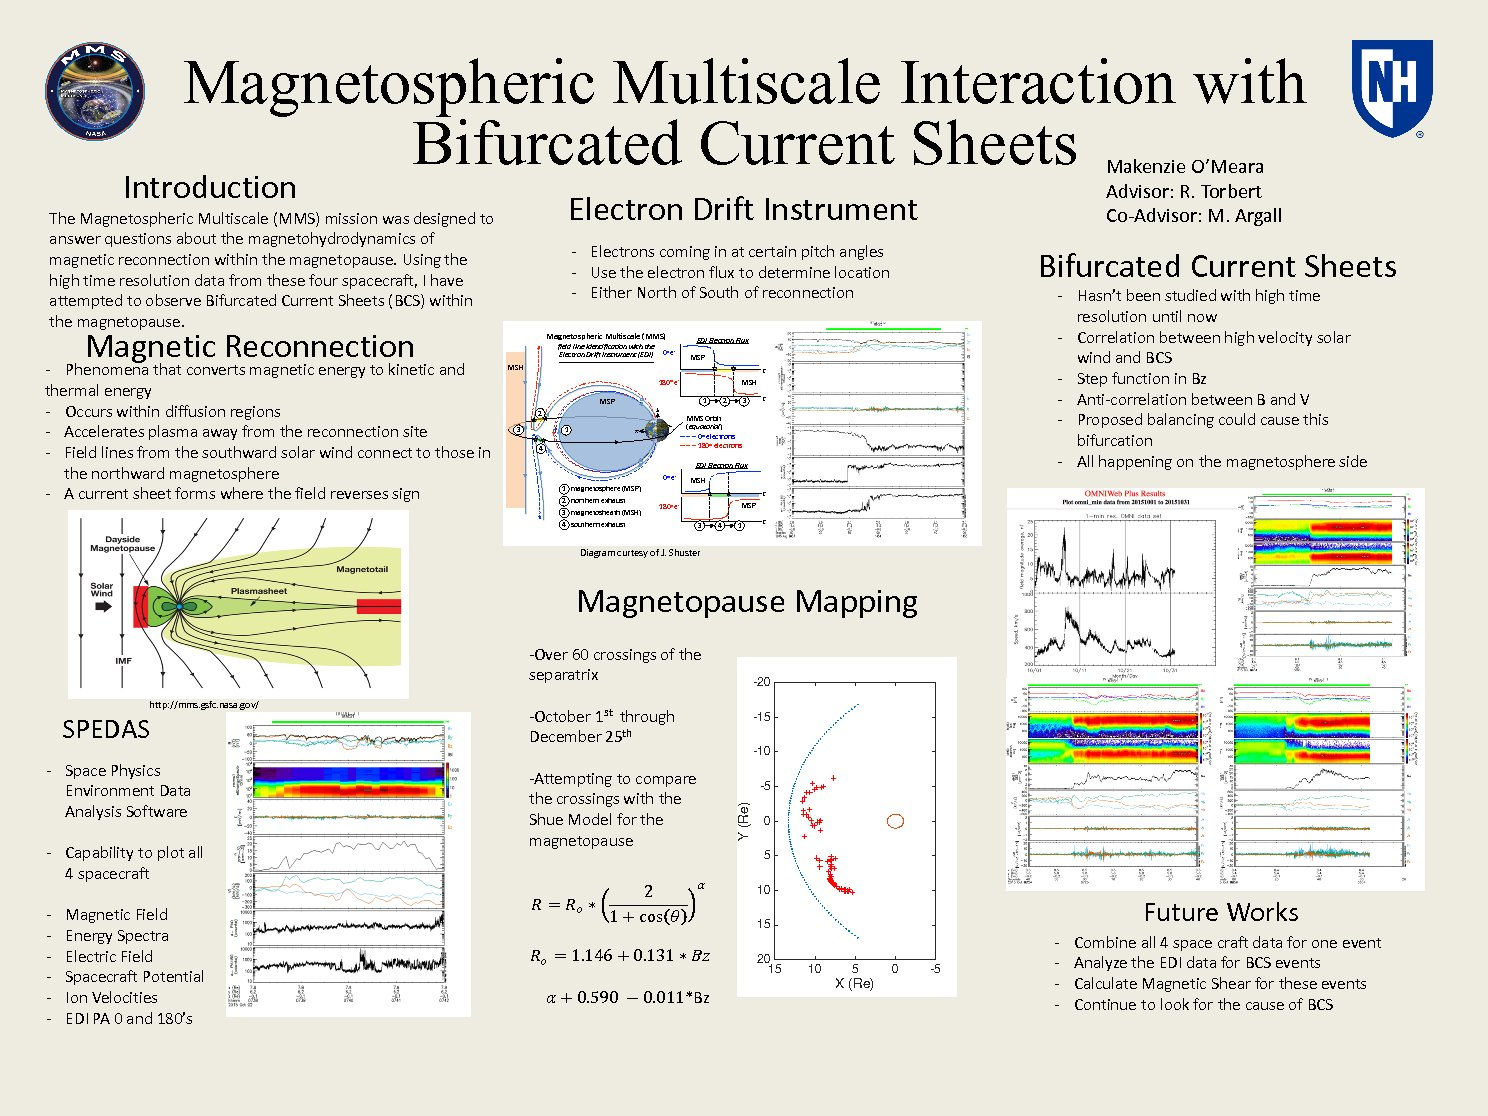 Magnetospheric Multiscale Interaction With Bifurcated Current Sheets by momeara